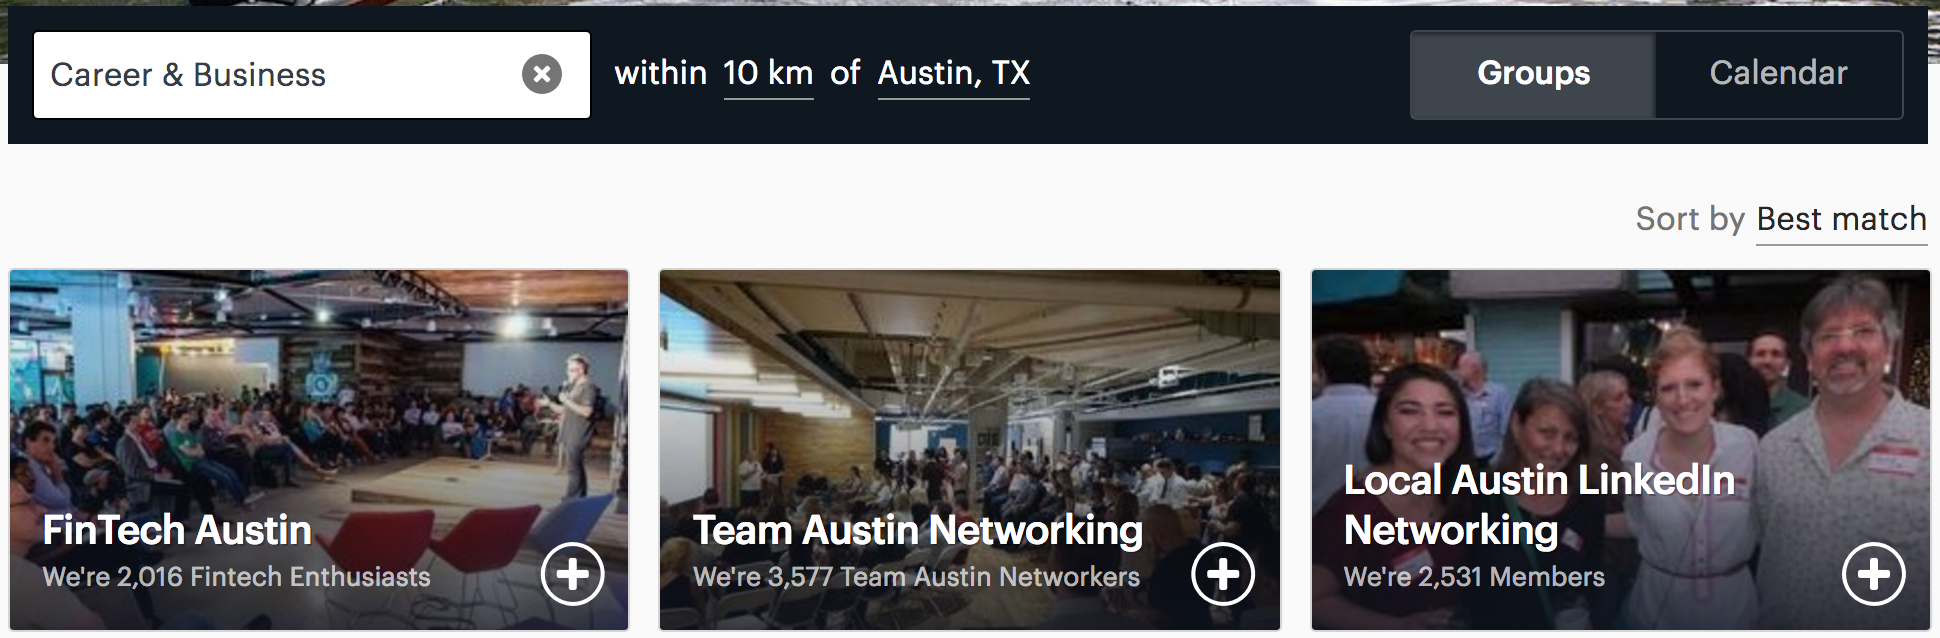 Screenshot showing a MeetUps search for Career & Business in Austin